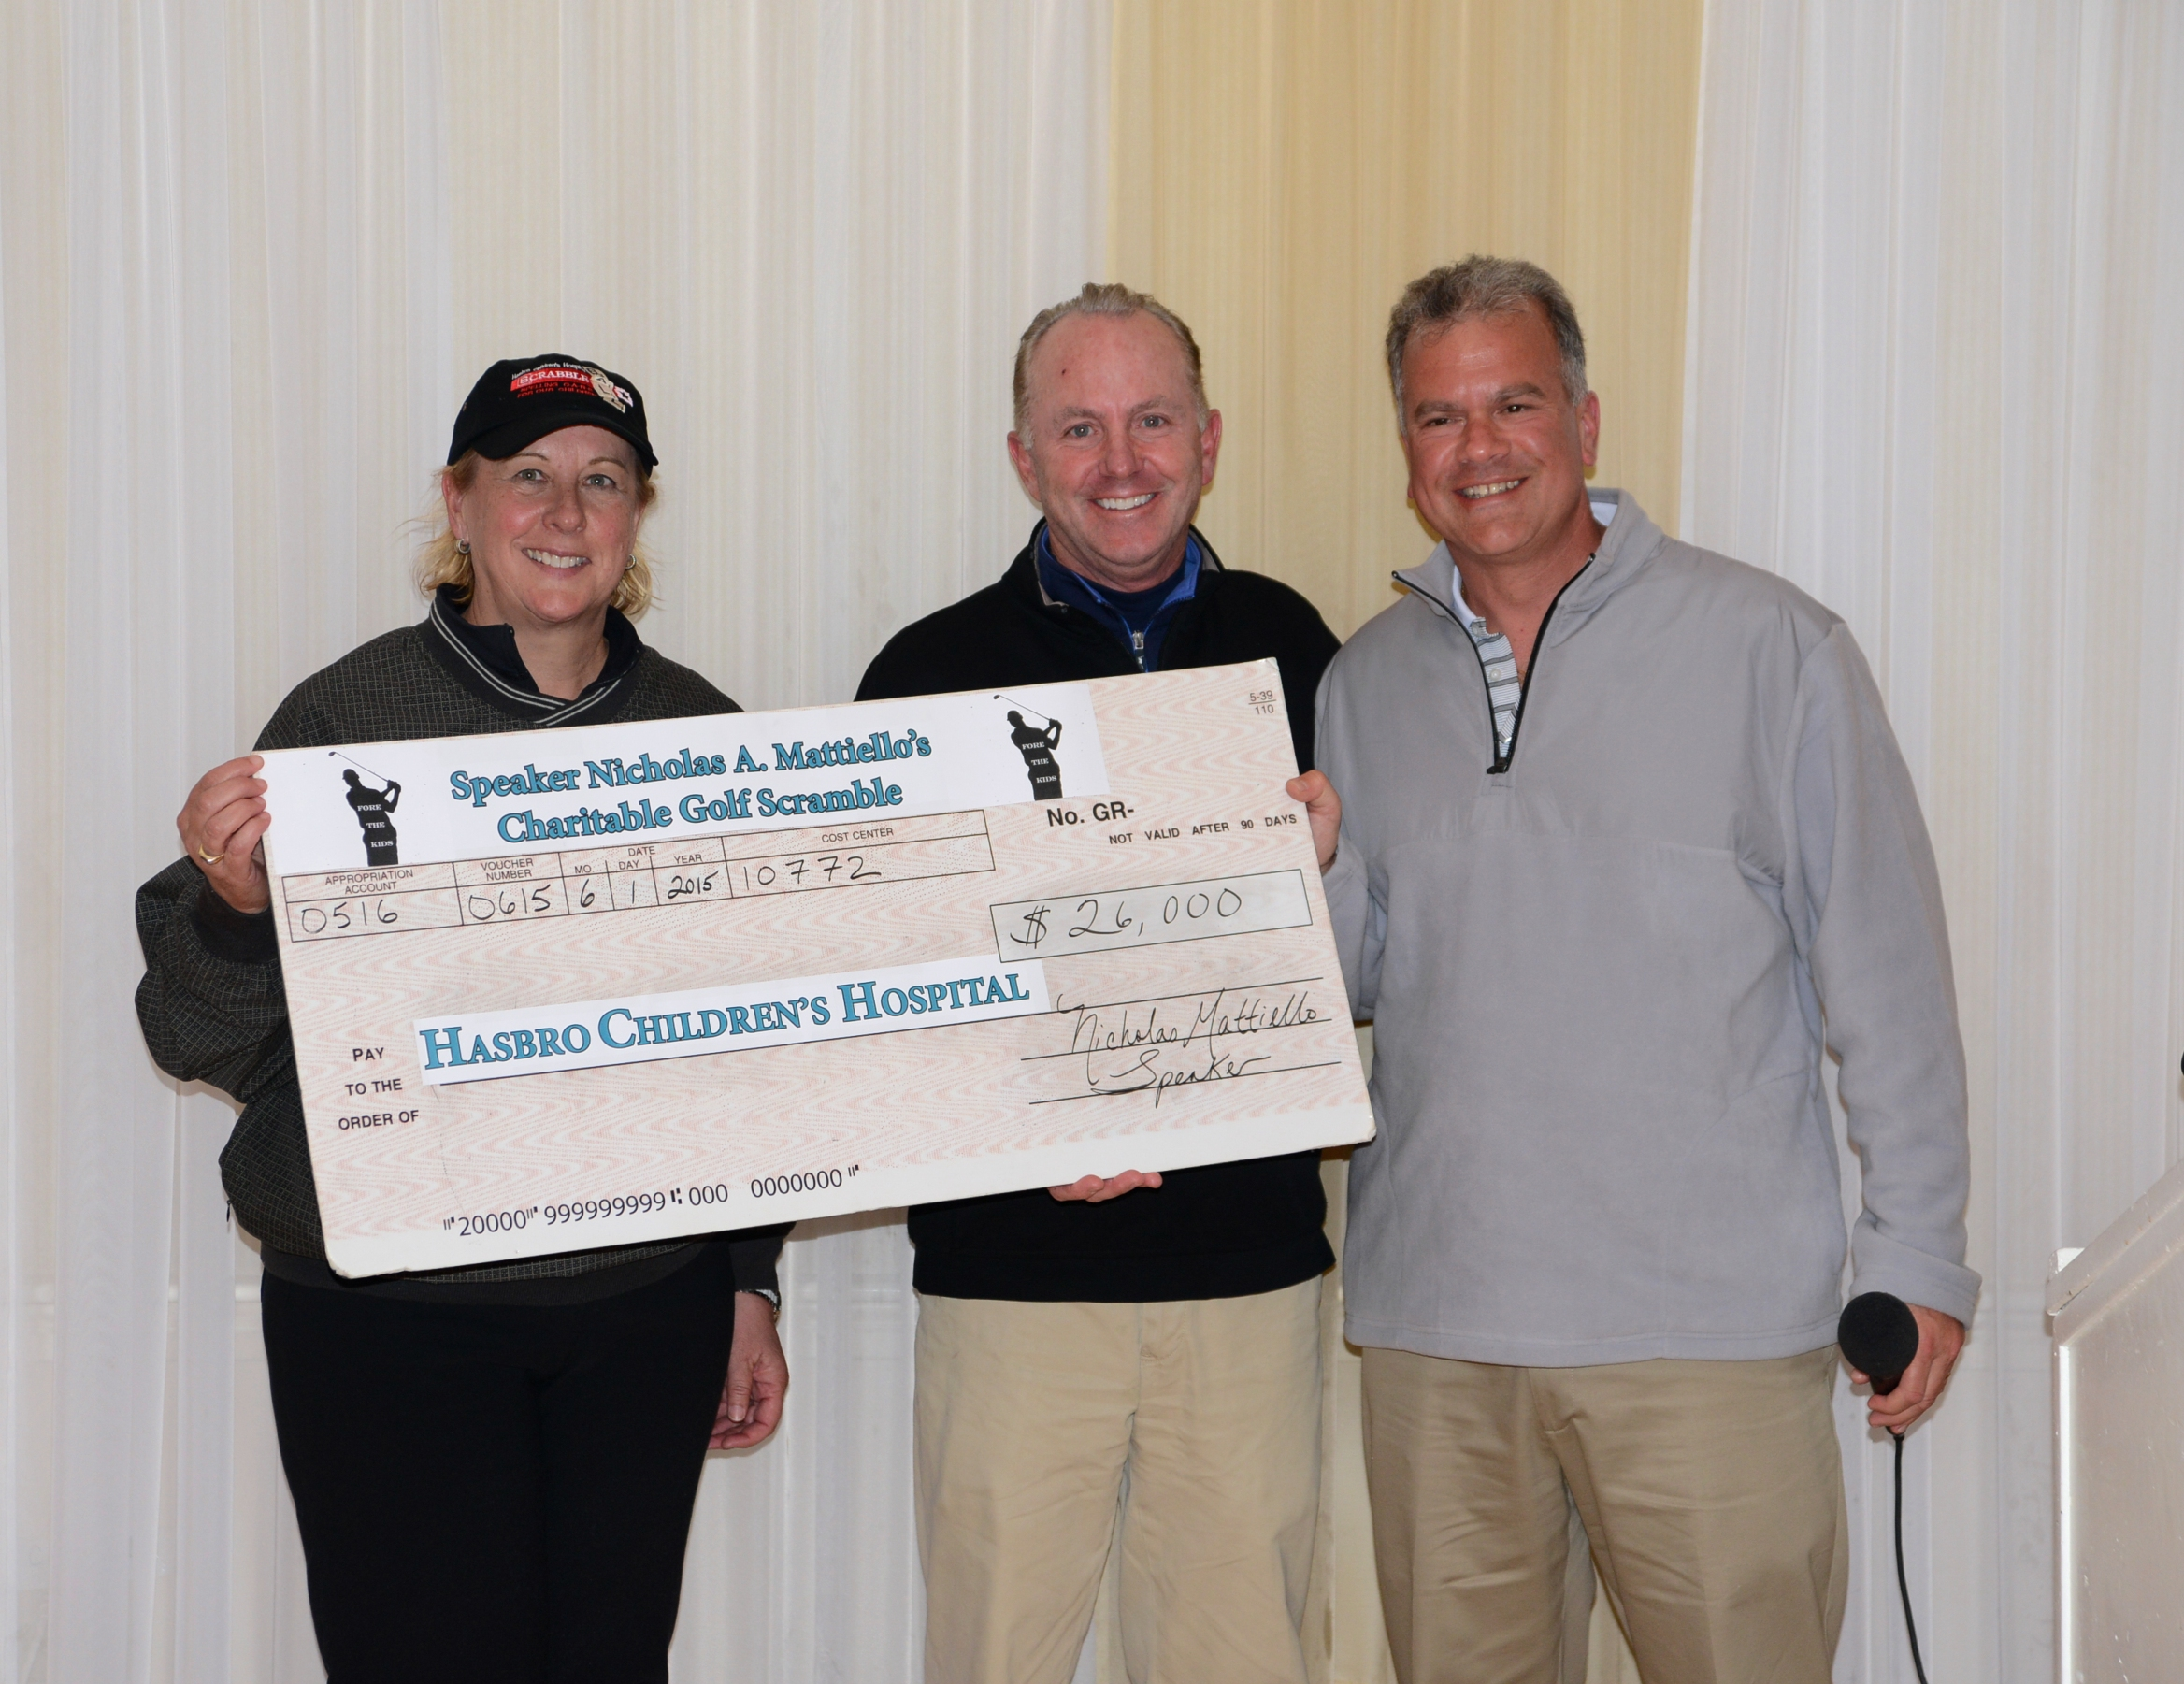 Speaker's Scramble Check Presentation